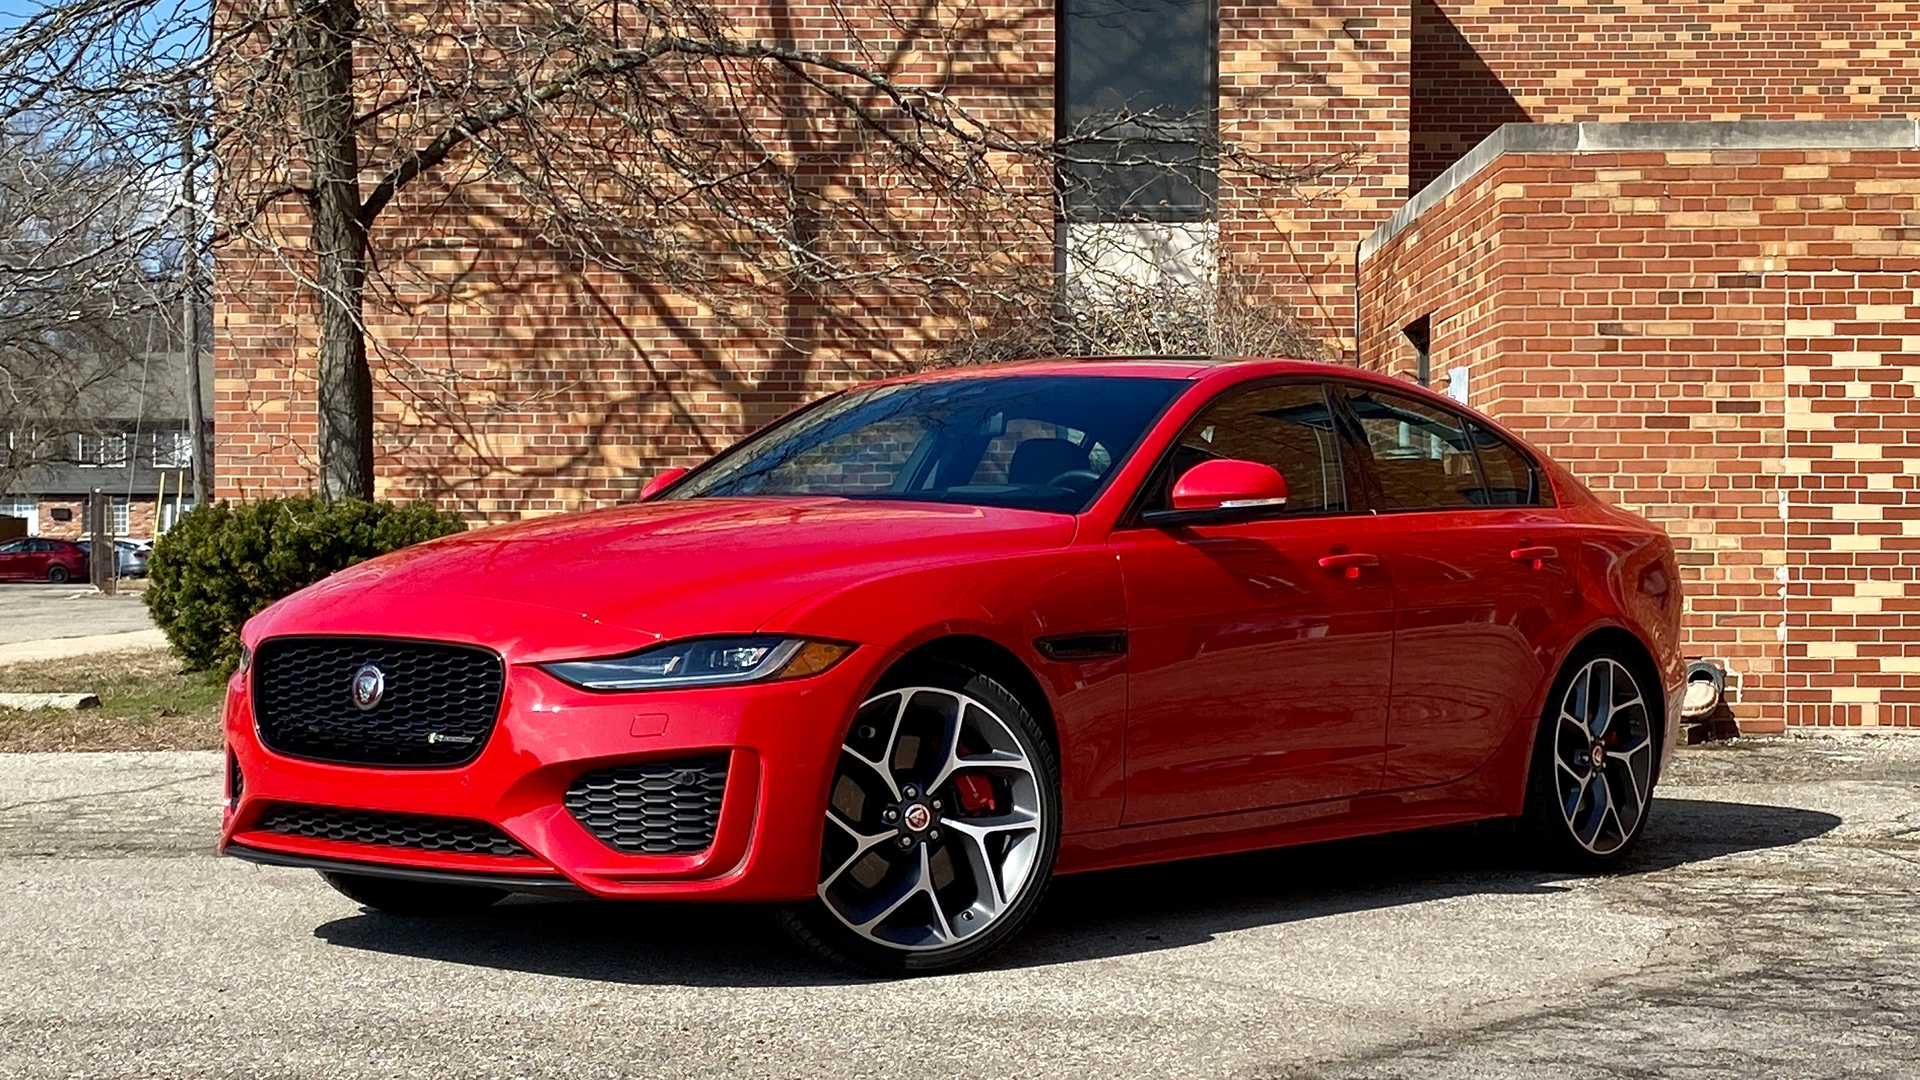 5 Jaguar XE Review: And Now For Something Completely Different